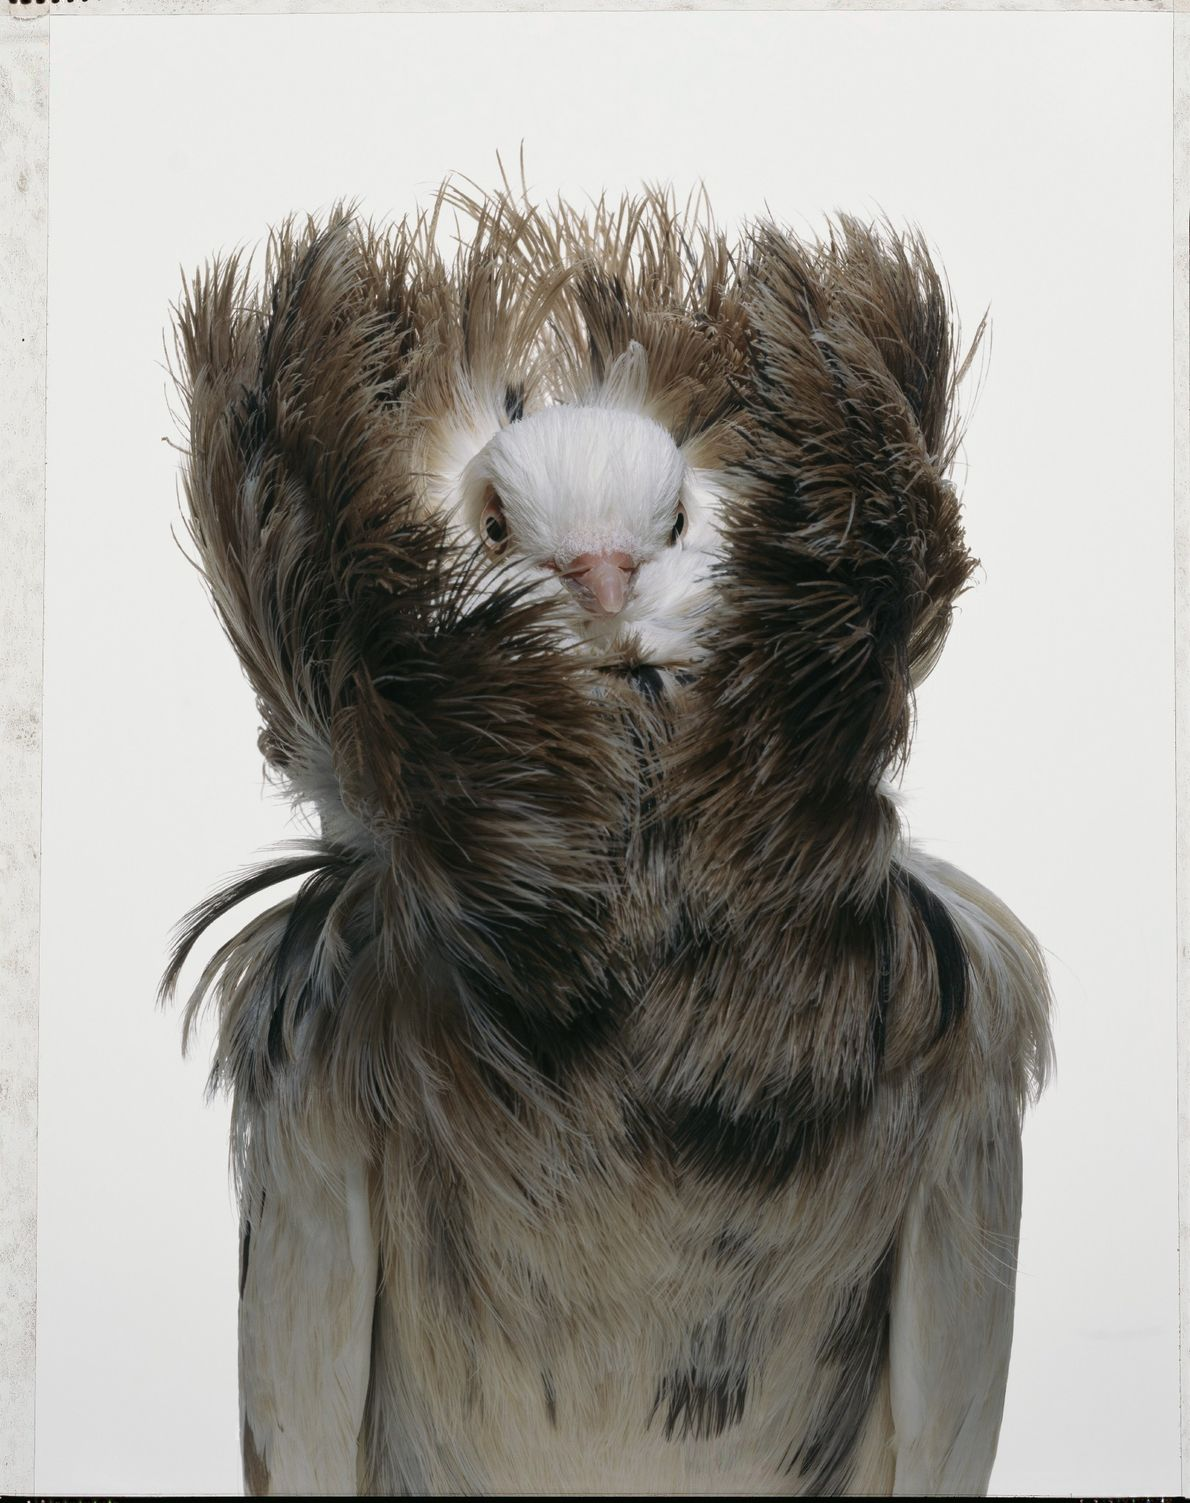 The Jacobin pigeon is one of approximately 350 breeds of domesticated pigeon around the world. Most ...